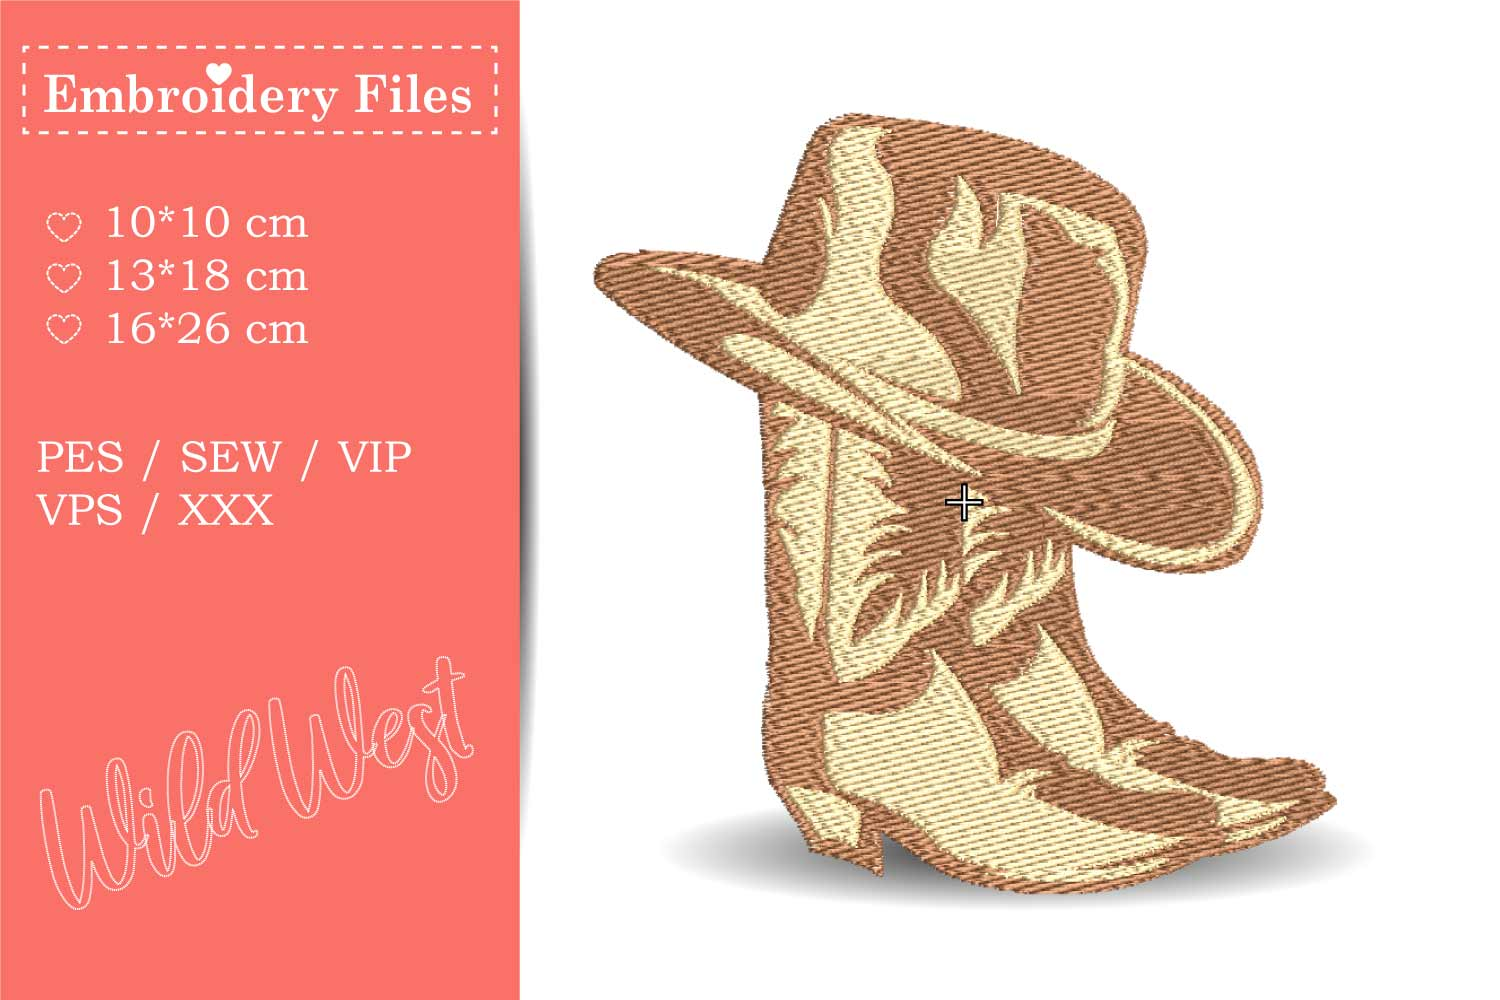 Wild West - Mini Bundle - Embroidery Files for Beginners example image 4